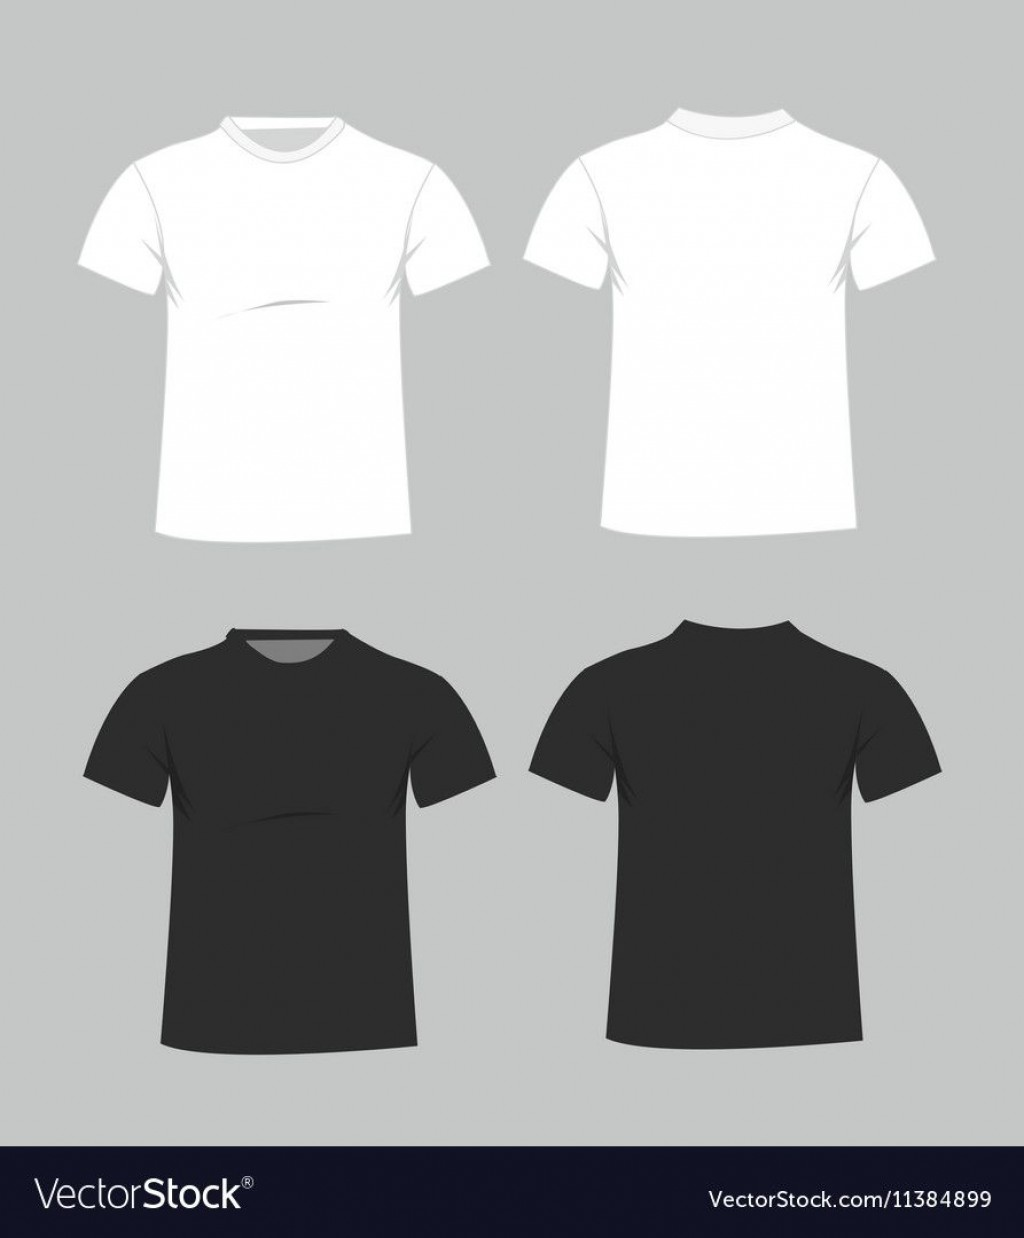 005 Imposing T Shirt Template Free High Resolution  T-shirt Mockup Download Coreldraw VectorLarge